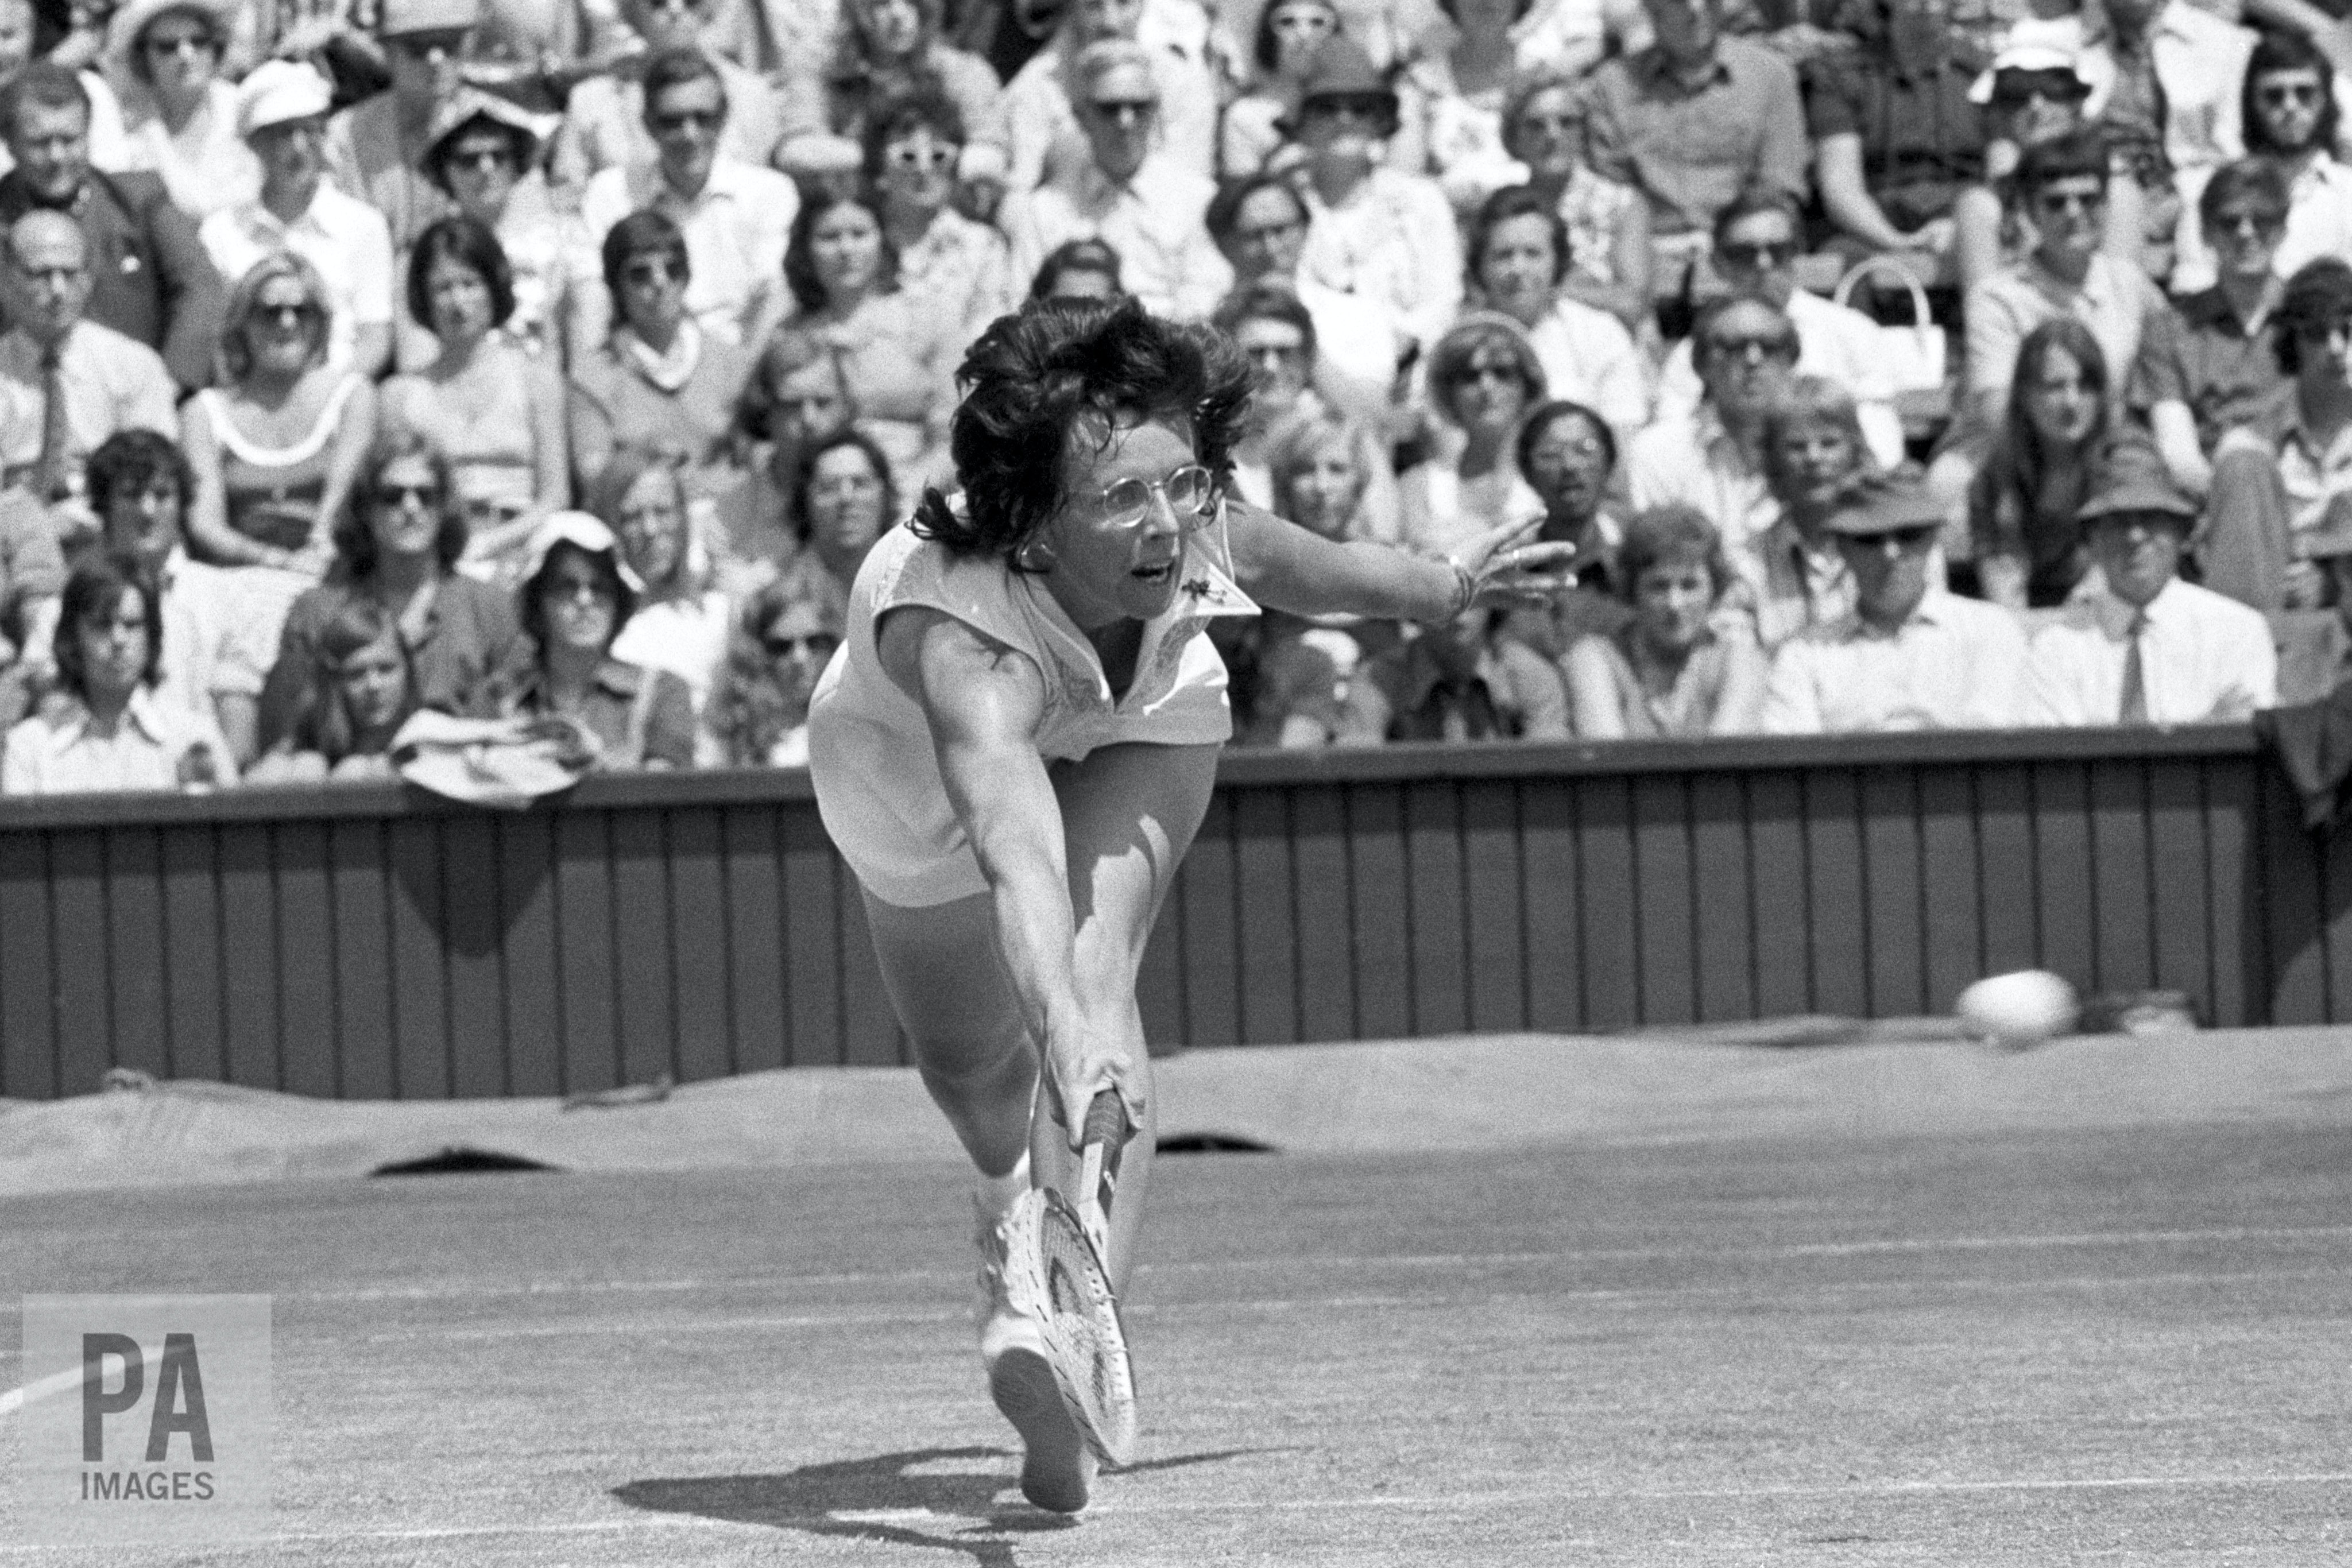 Billie jean king battle of the sexes photo 69